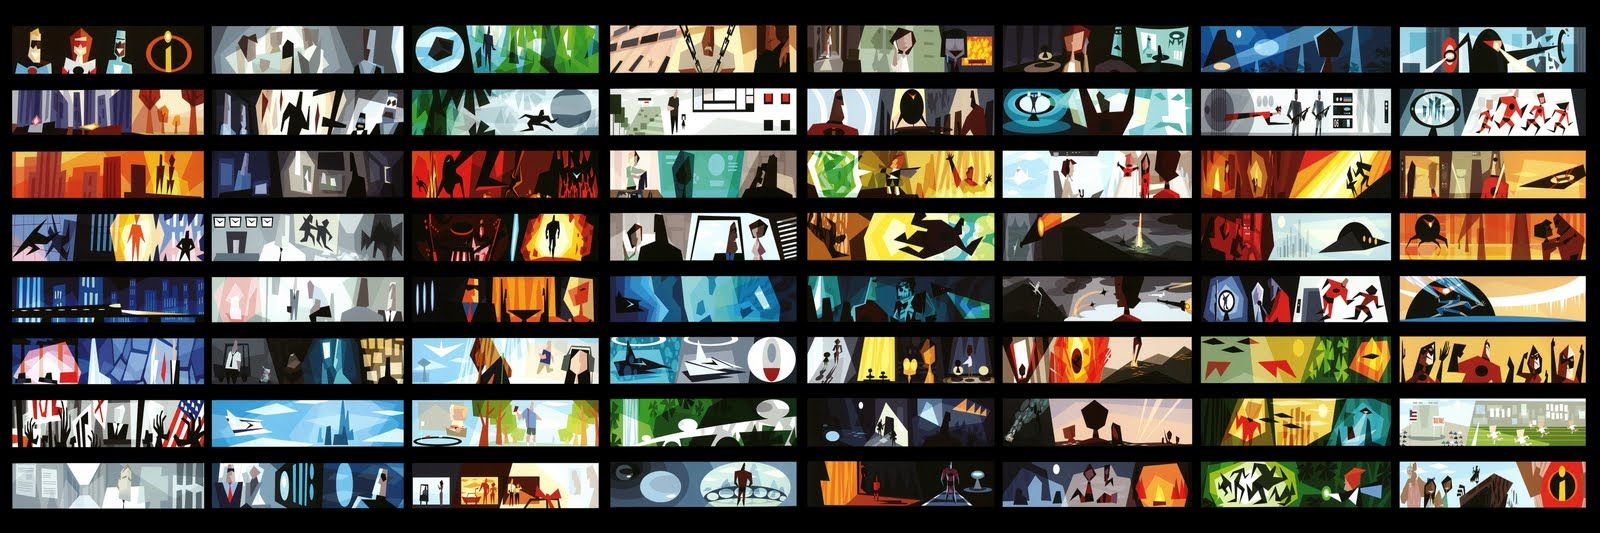 Color Script By Lou Romano For PixarS The Incredibles Saul Bass